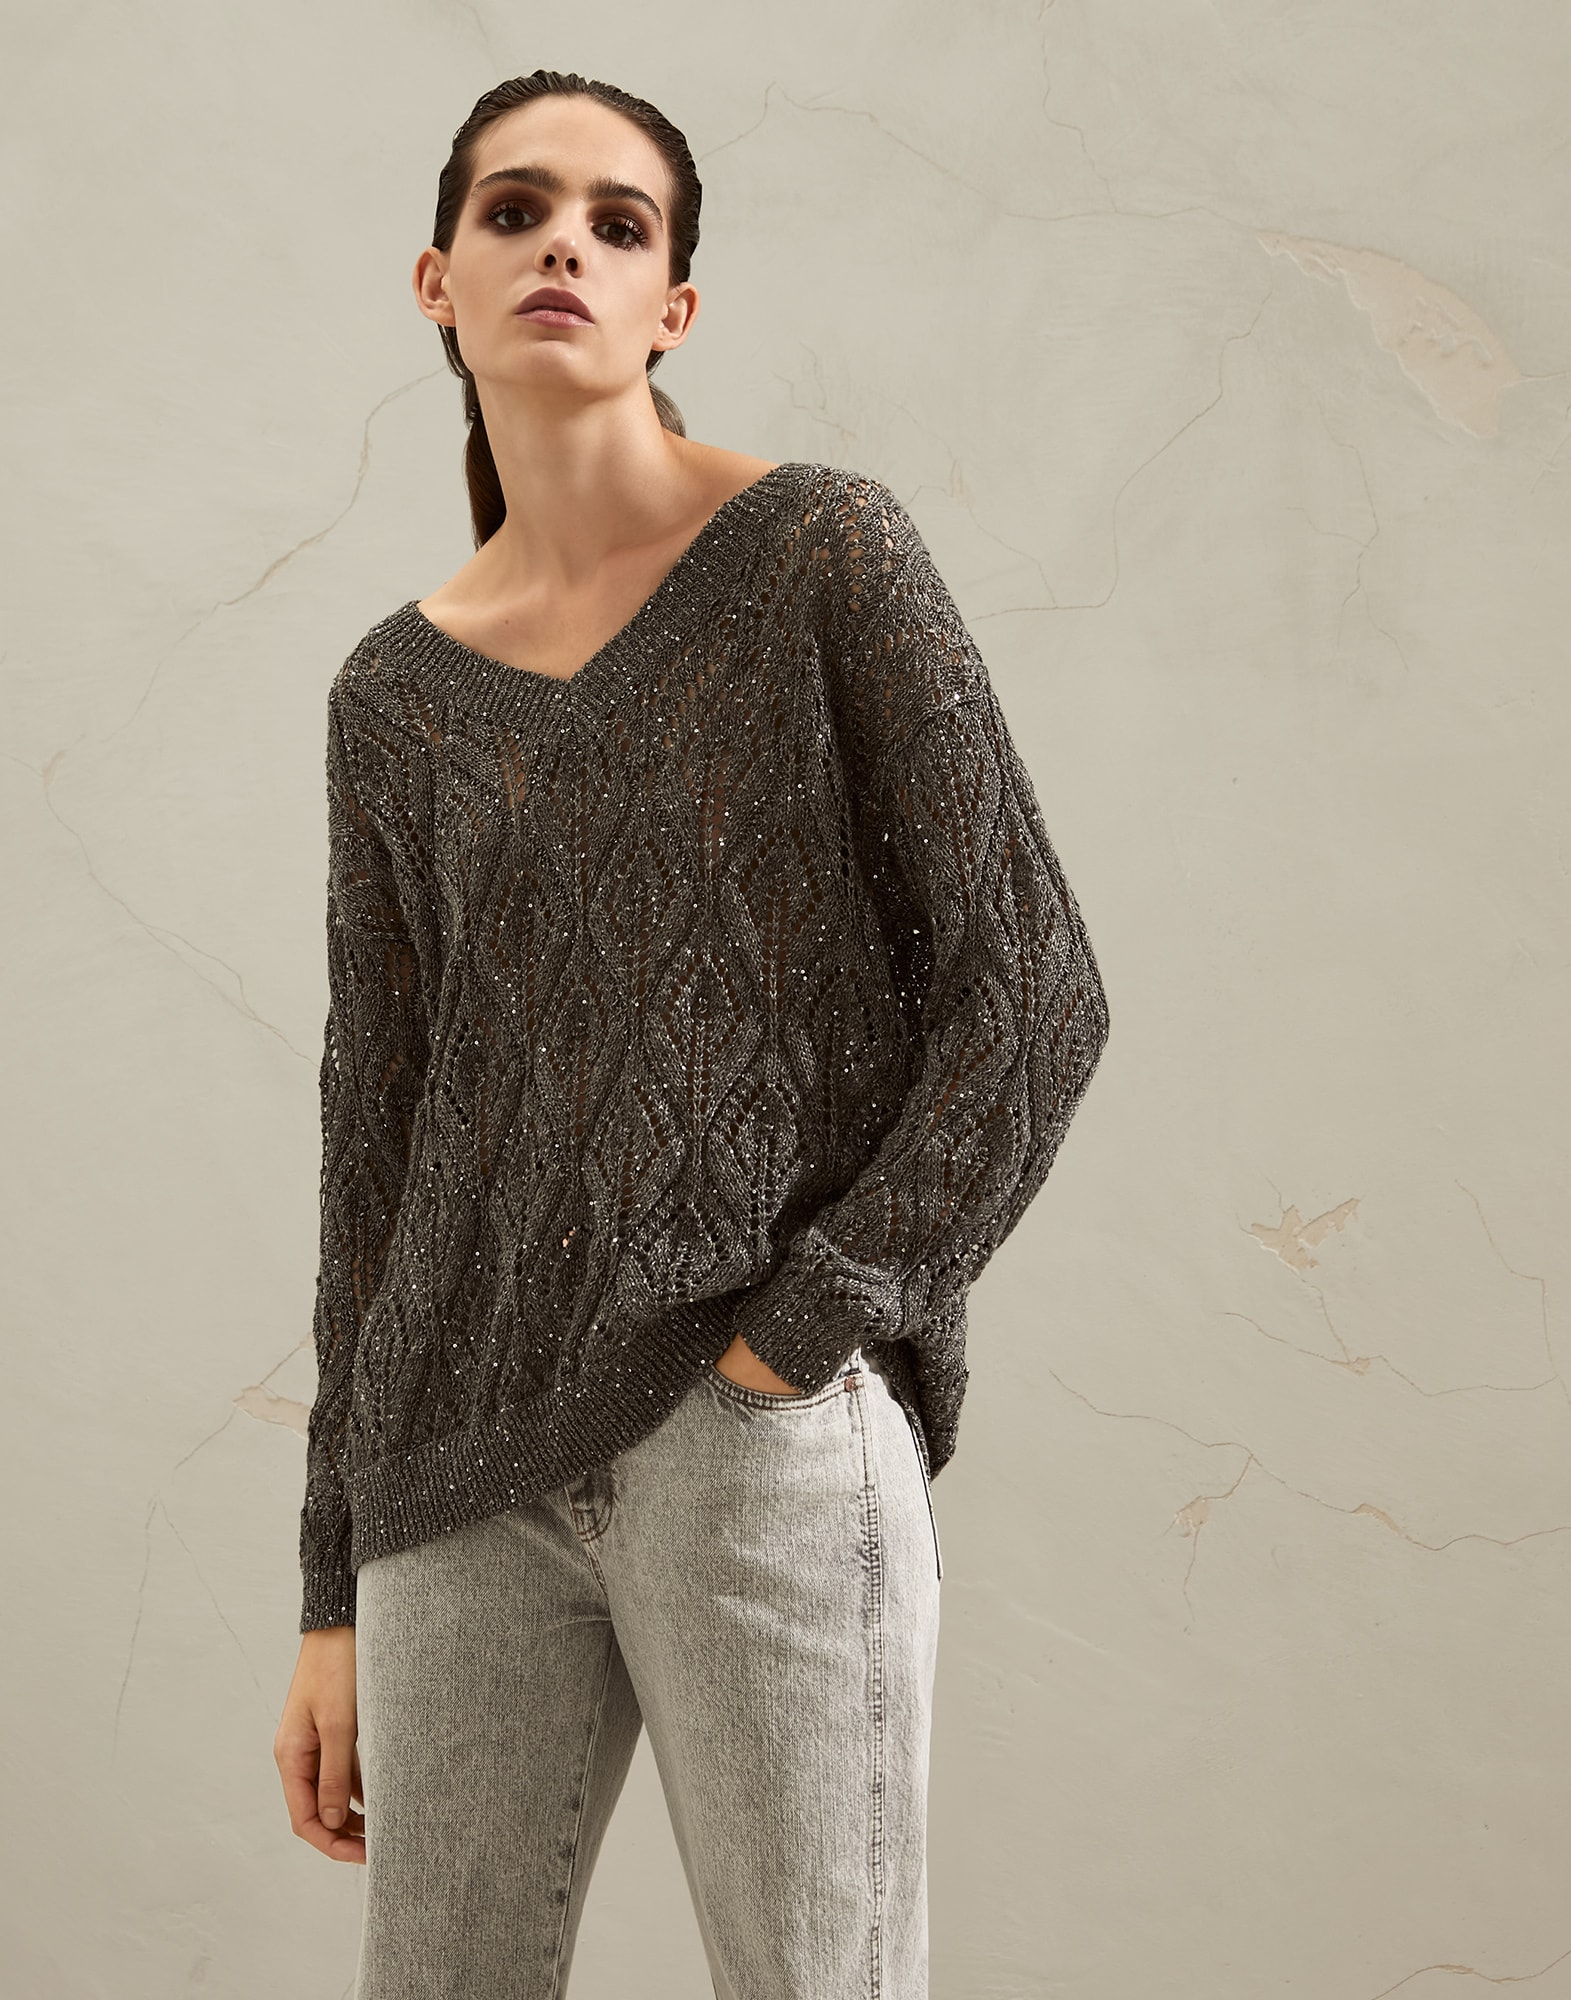 V-neck Sweater - Front view